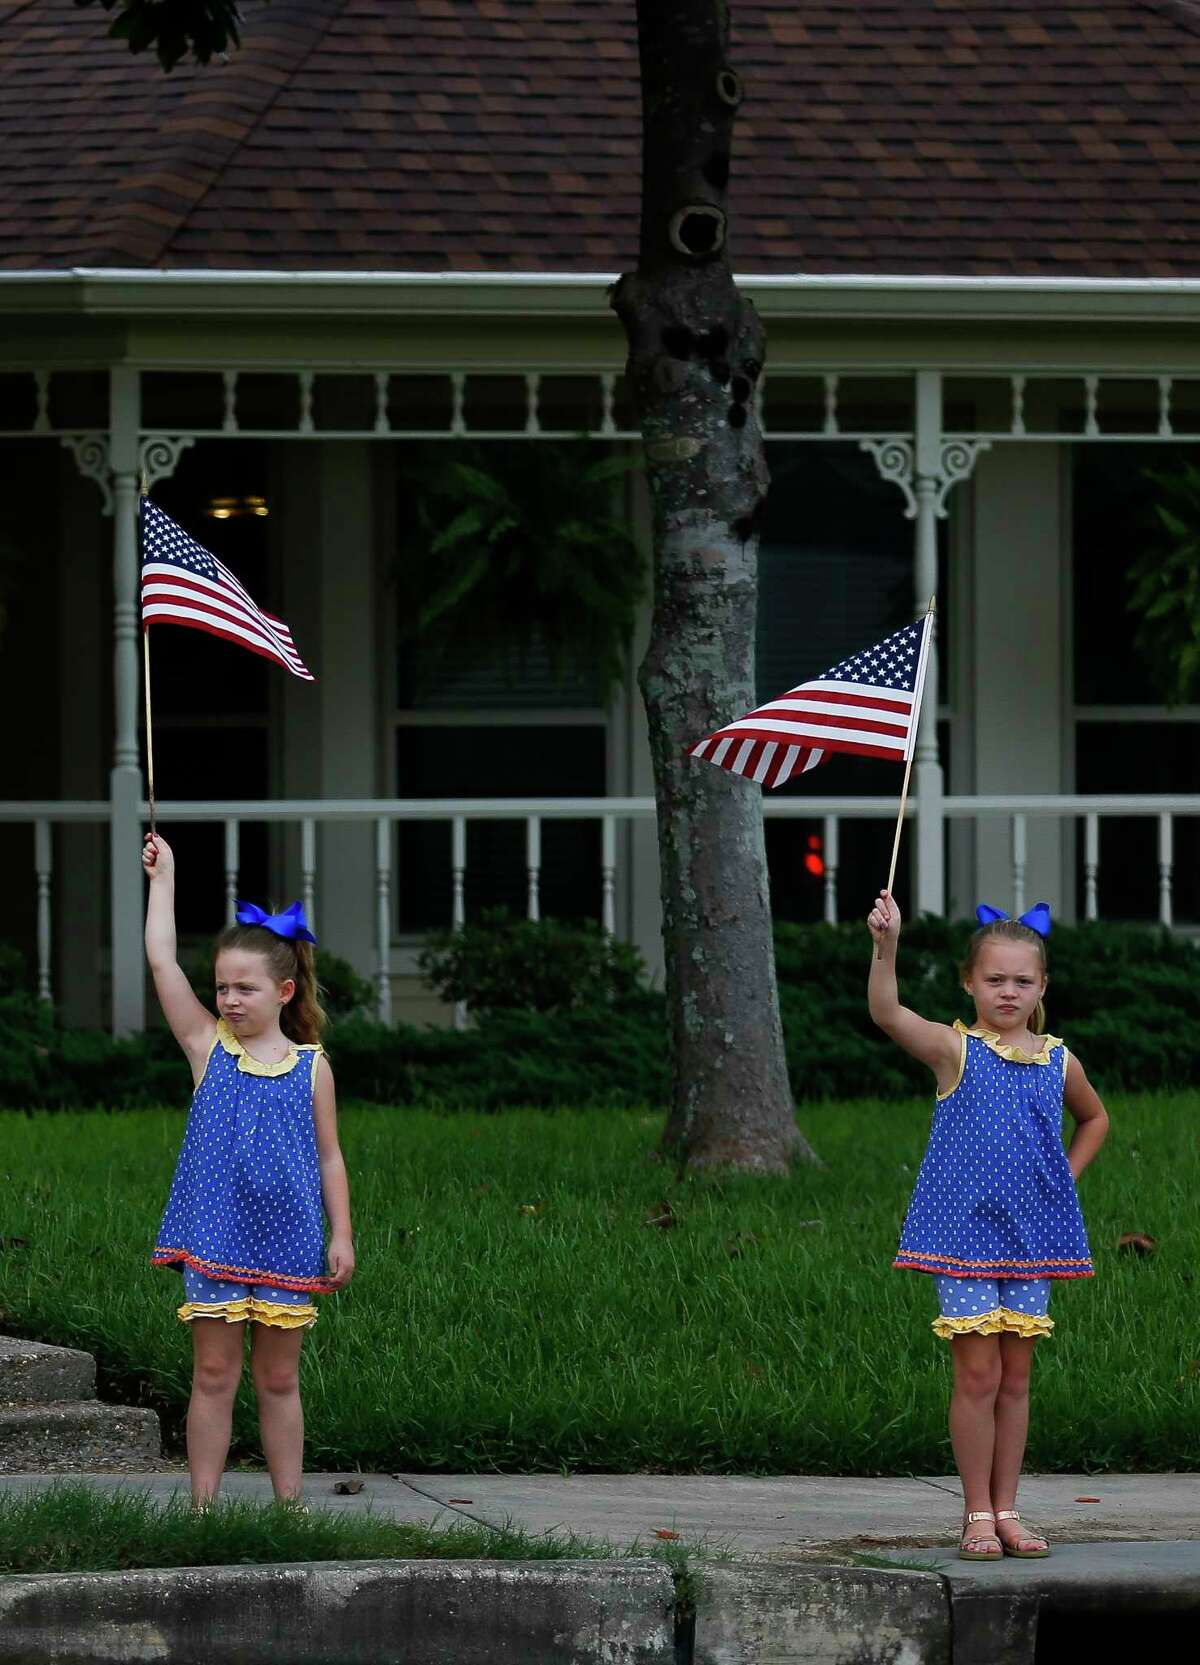 Pearland residents wave American flags as President Donald Trump's motorcade passes through the neighborhood as he visits Houston in the wake of Tropical Storm Harvey Saturday, Sept. 2, 2017.